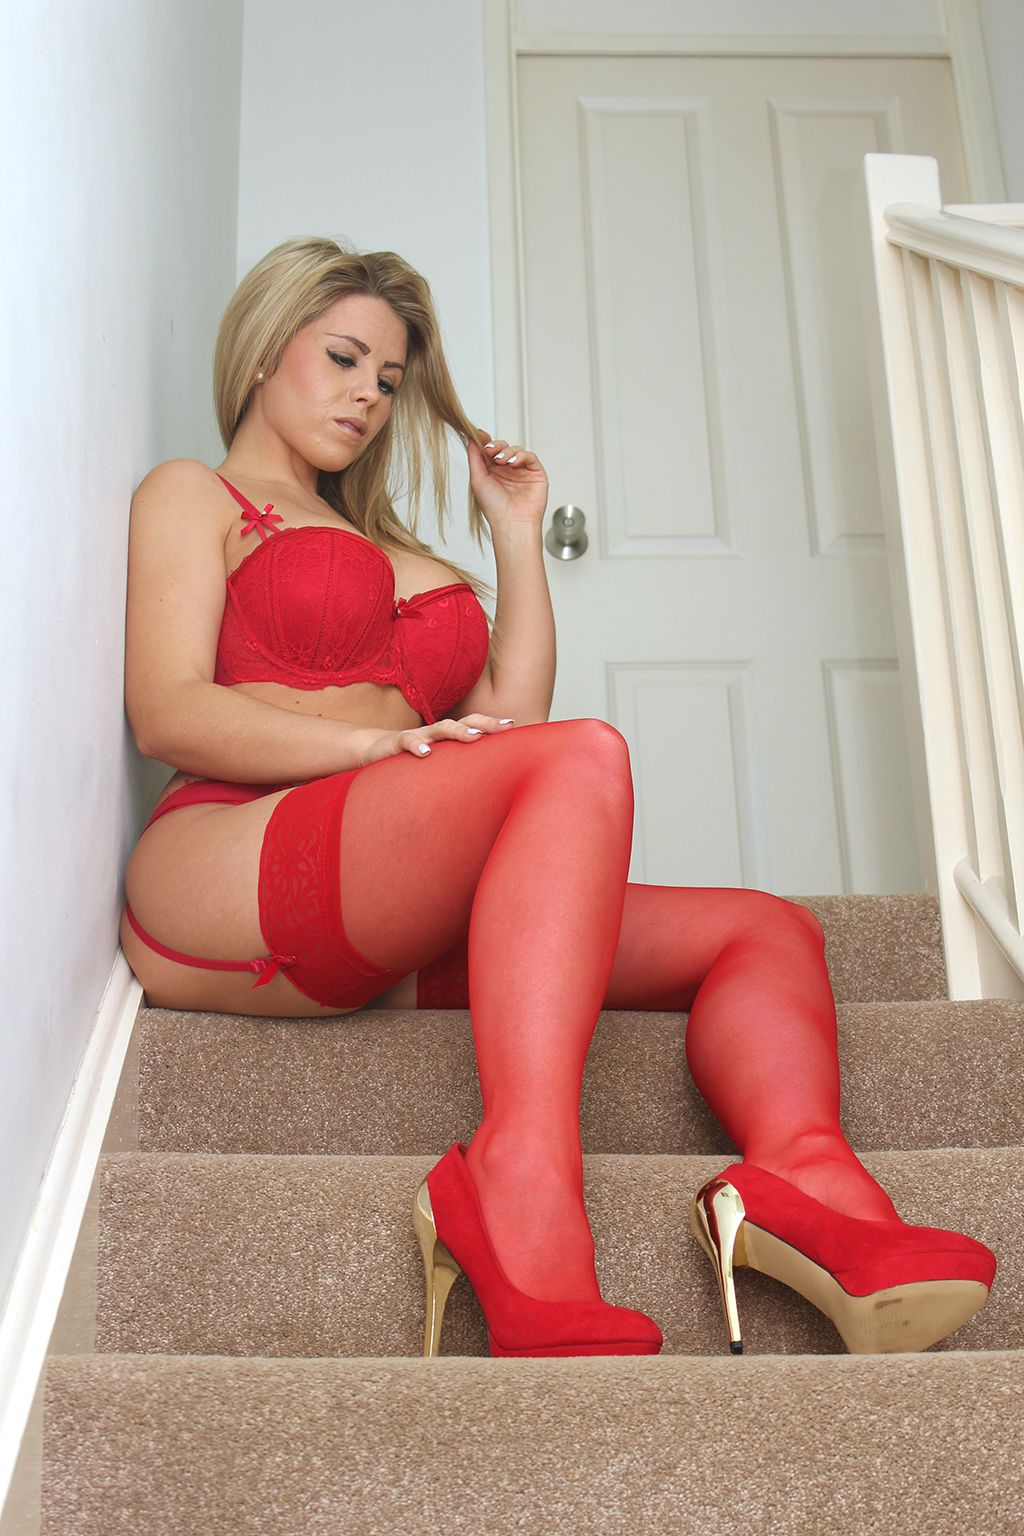 busty blonde in red lingerie, stockings and heels | 34 | pinterest